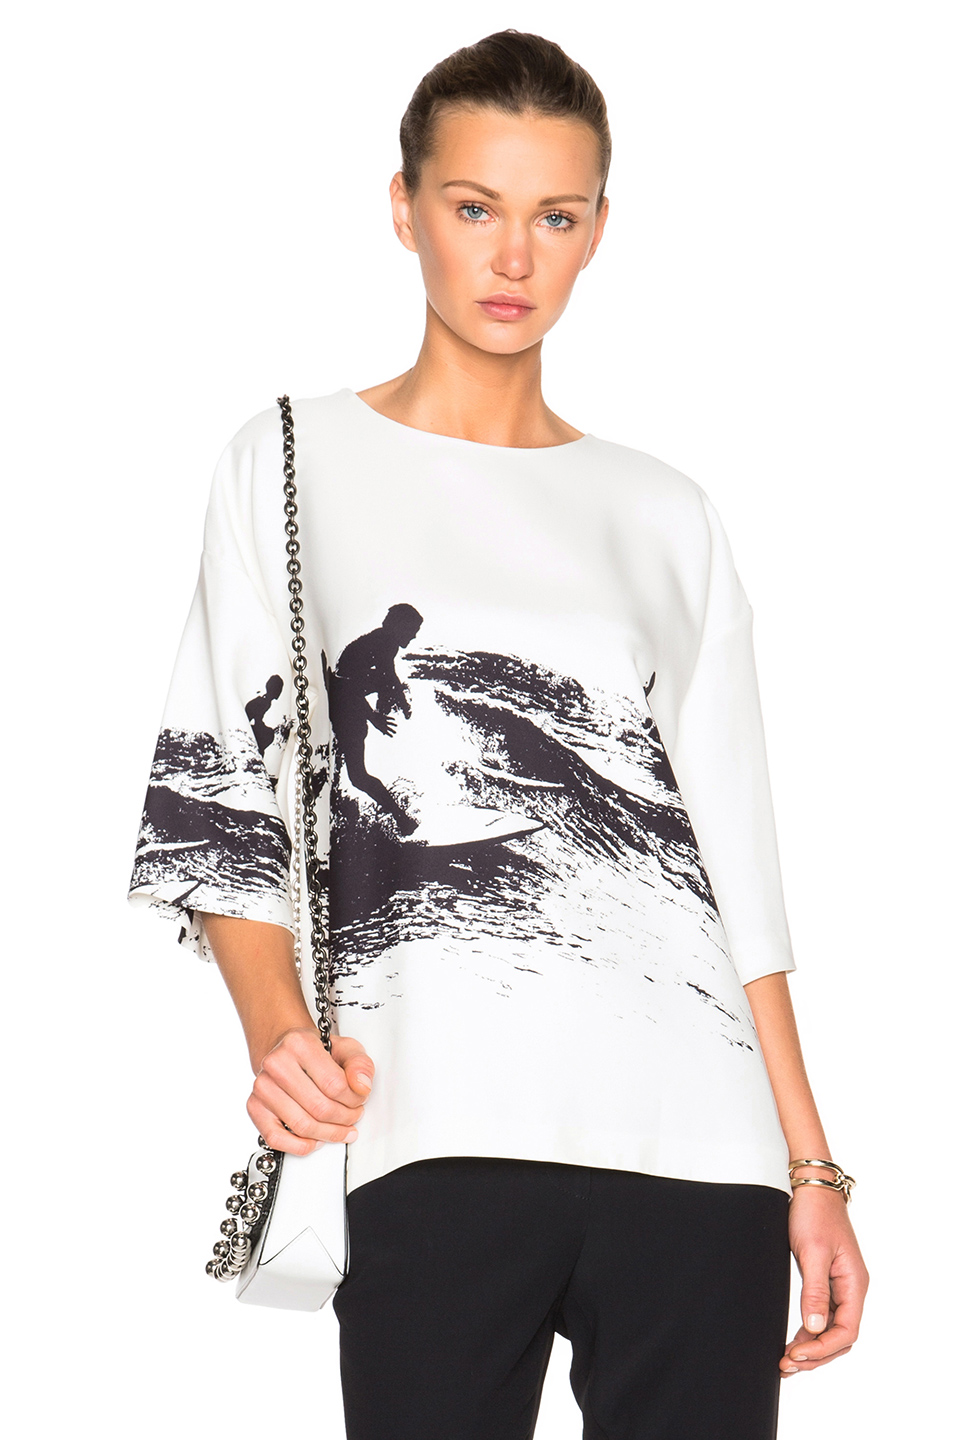 Victoria Beckham Oversized Tee in White,Abstract